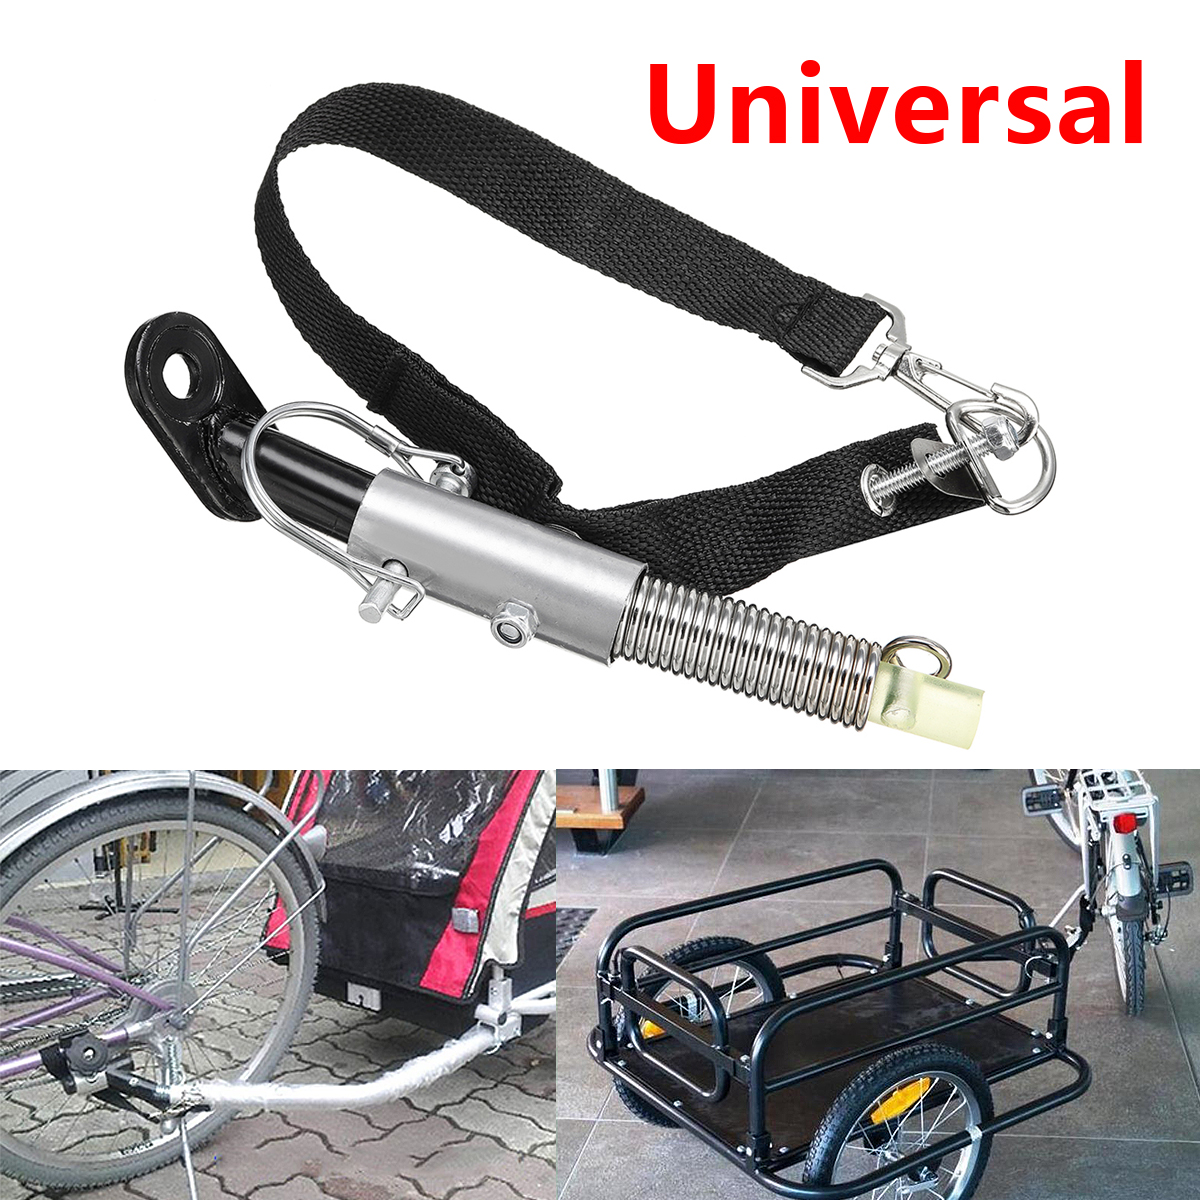 Bike Trailer Steel Linker Bicycle Trailer Classic Hitch Universal Model Baby Pet Coupler Hitch Linker|Ride On Cars|   - title=